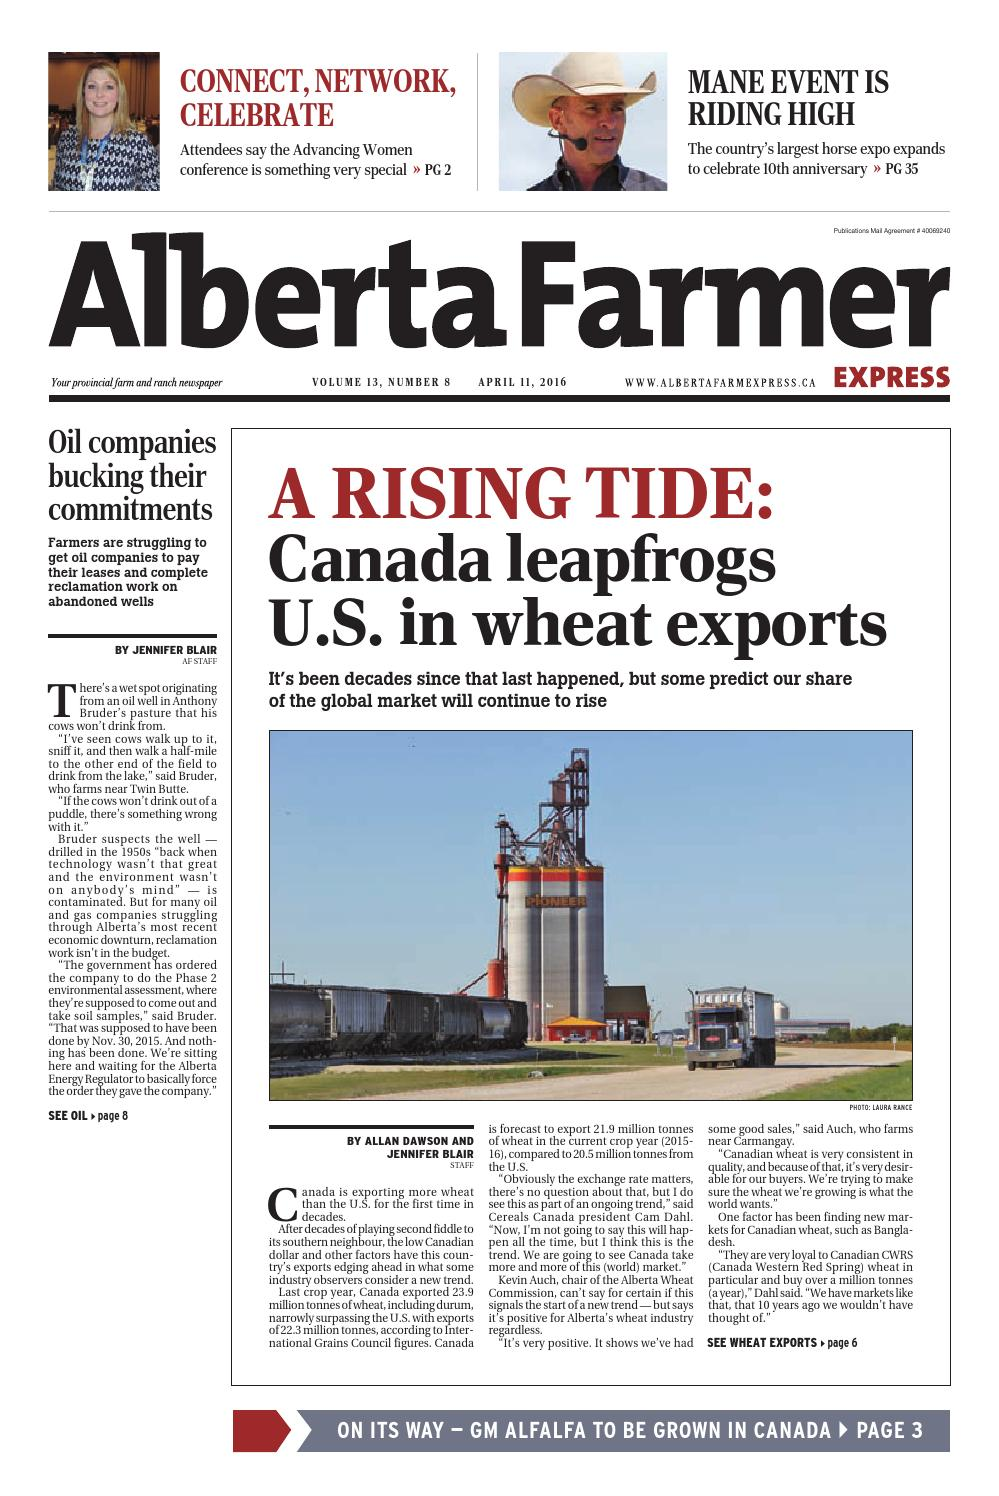 Alberta farmer express by farm business communications issuu fandeluxe Image collections